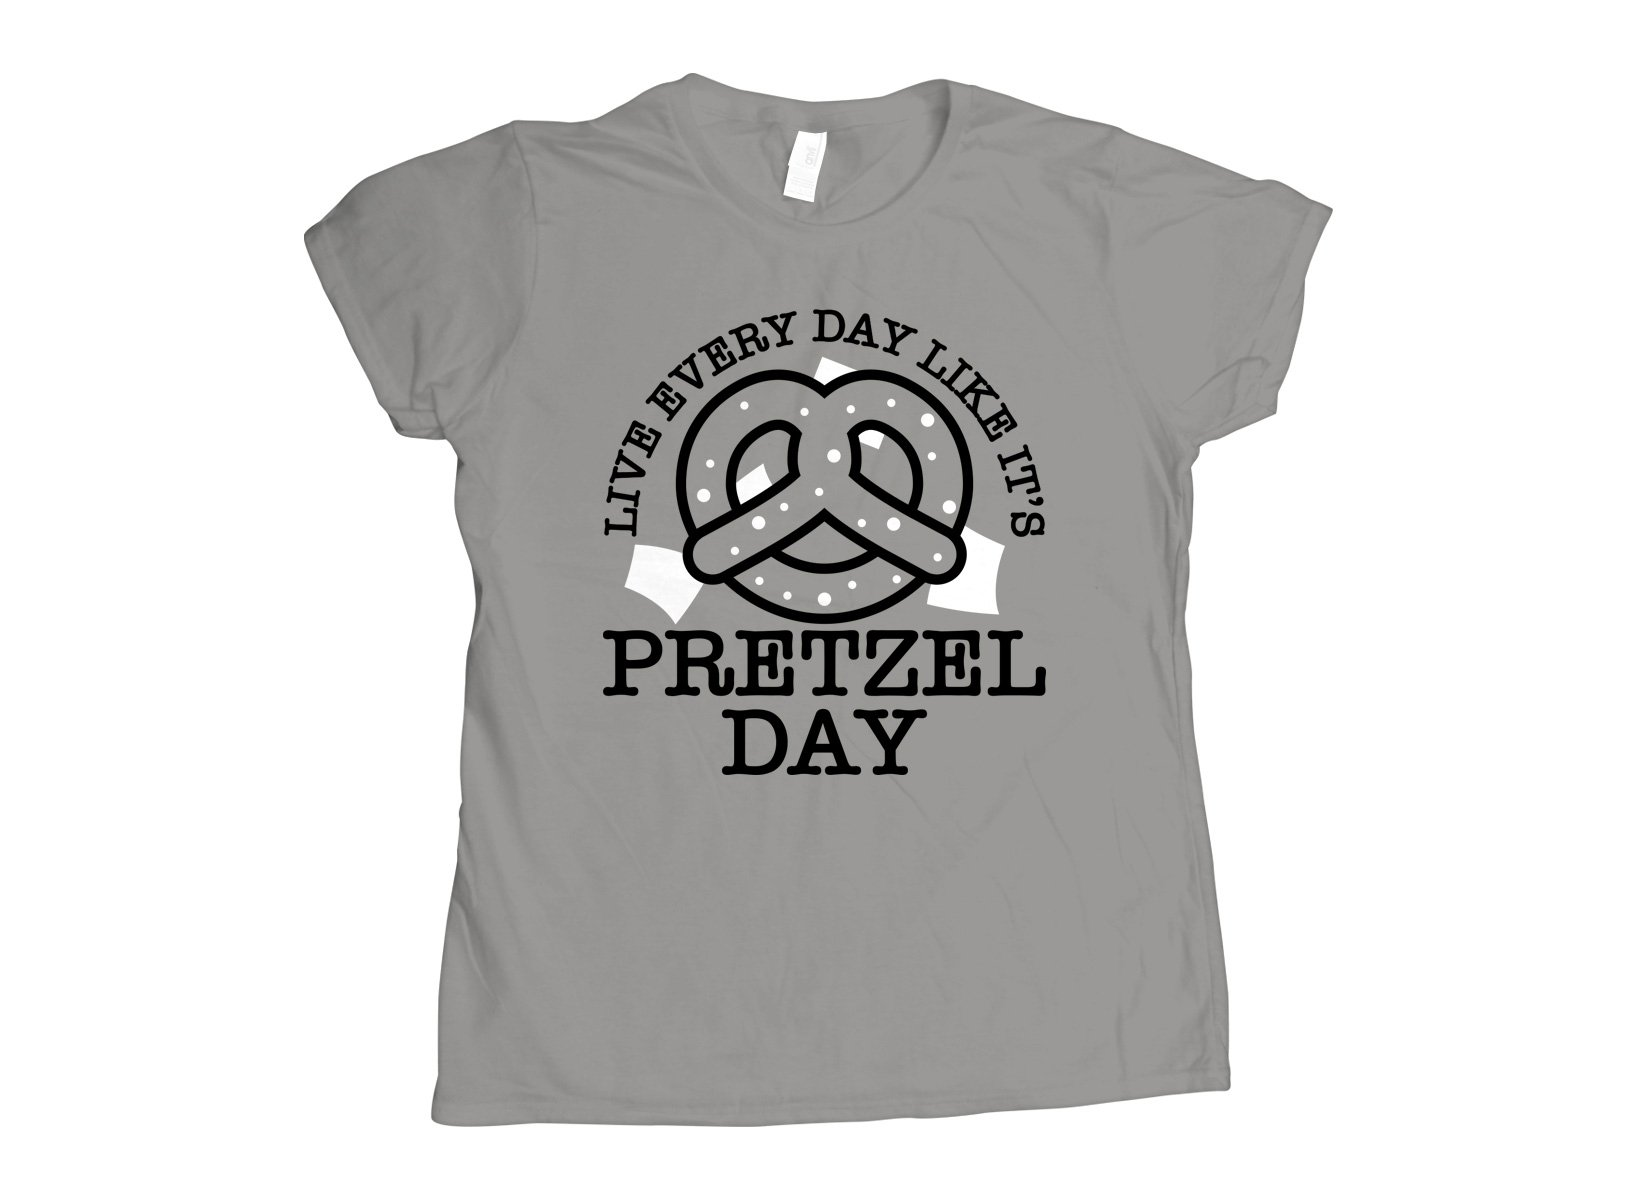 Live Every Day Like It's Pretzel Day on Womens T-Shirt